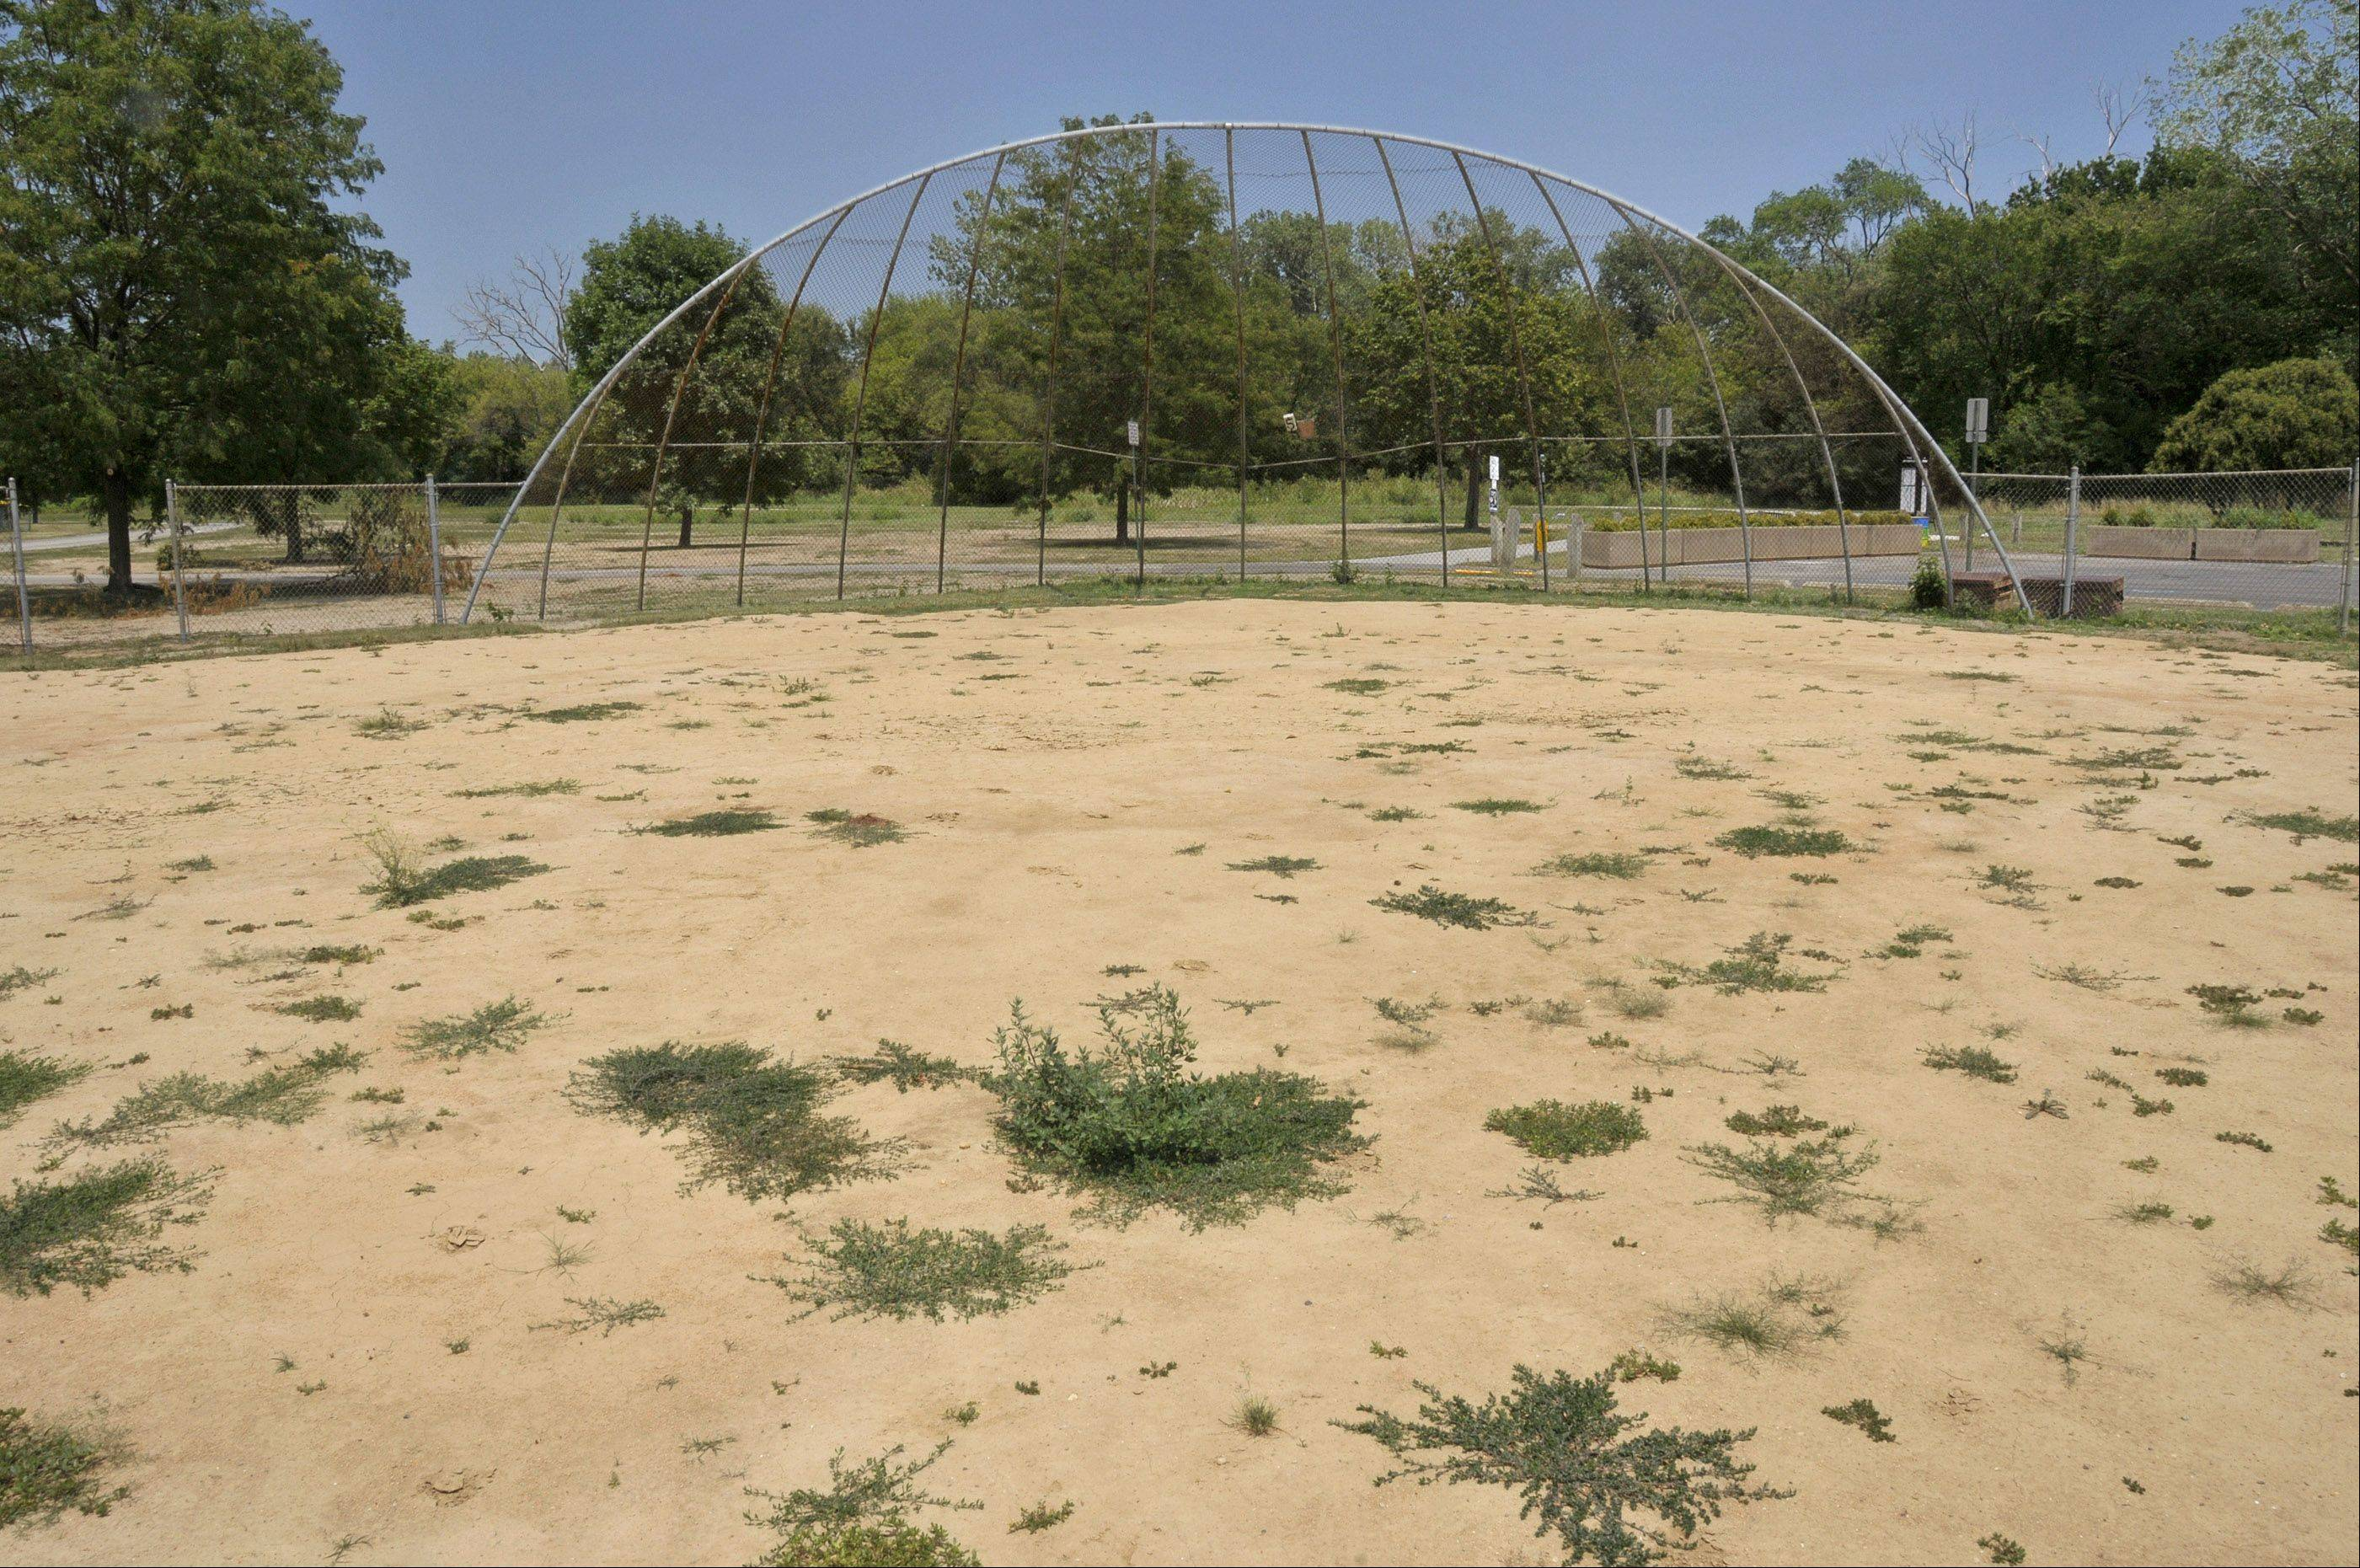 All ball fields at Community Park in Addison are in line for upgrades as part of a $1.7 million park district master plan that will reduce flooding, add new amenities and transform one field to be used for multiple sports.